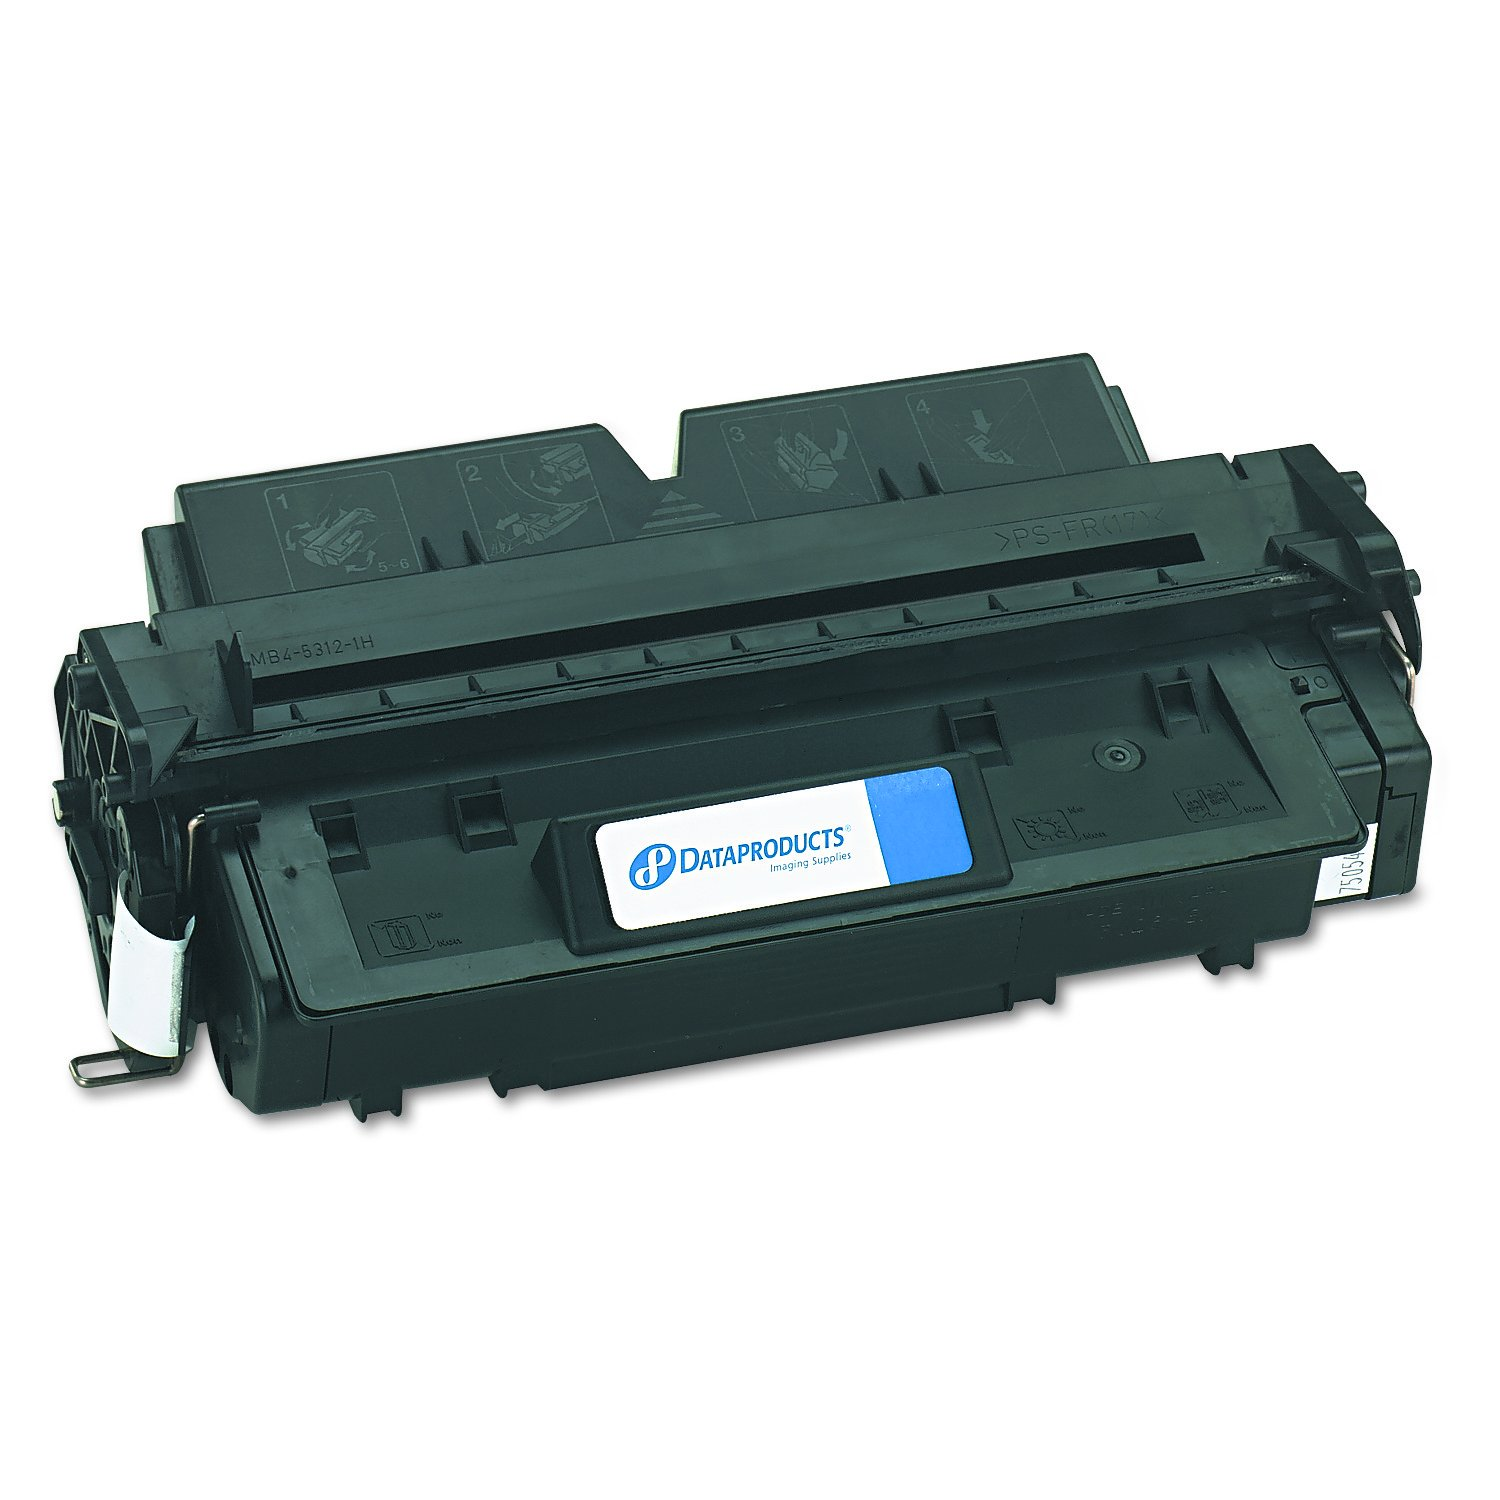 Dataproducts DPCFX7P Remanufactured FX-7 Toner, 4500 Page-Yield, Black